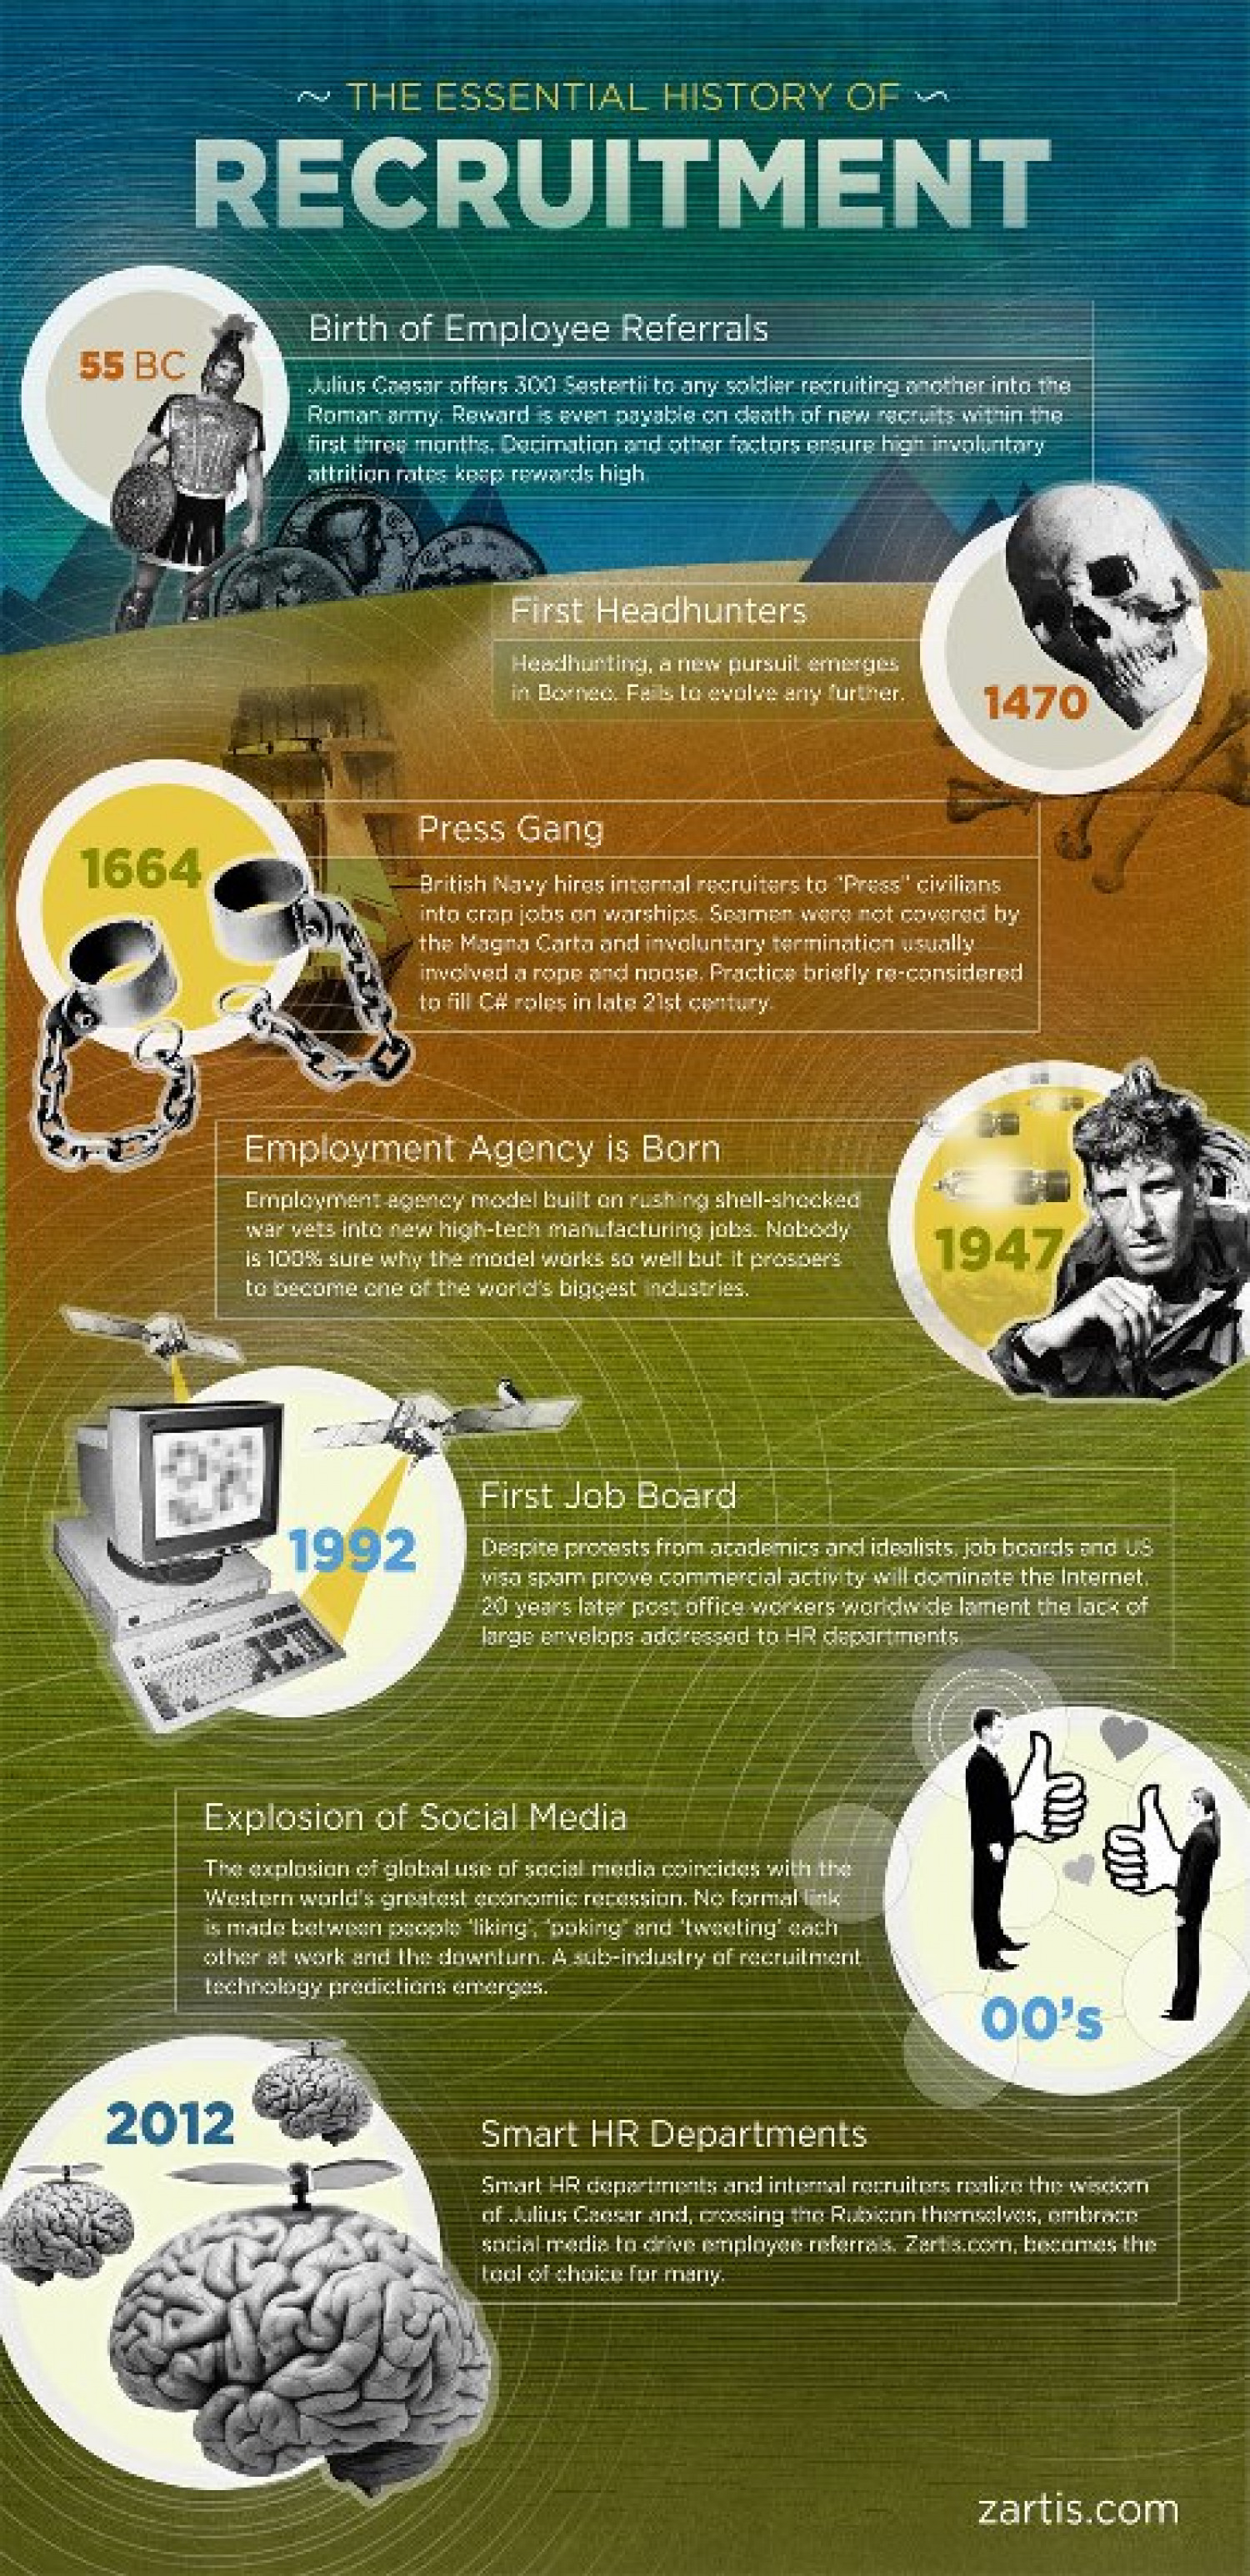 The Essential History of Recruitment by Zartis Infographic